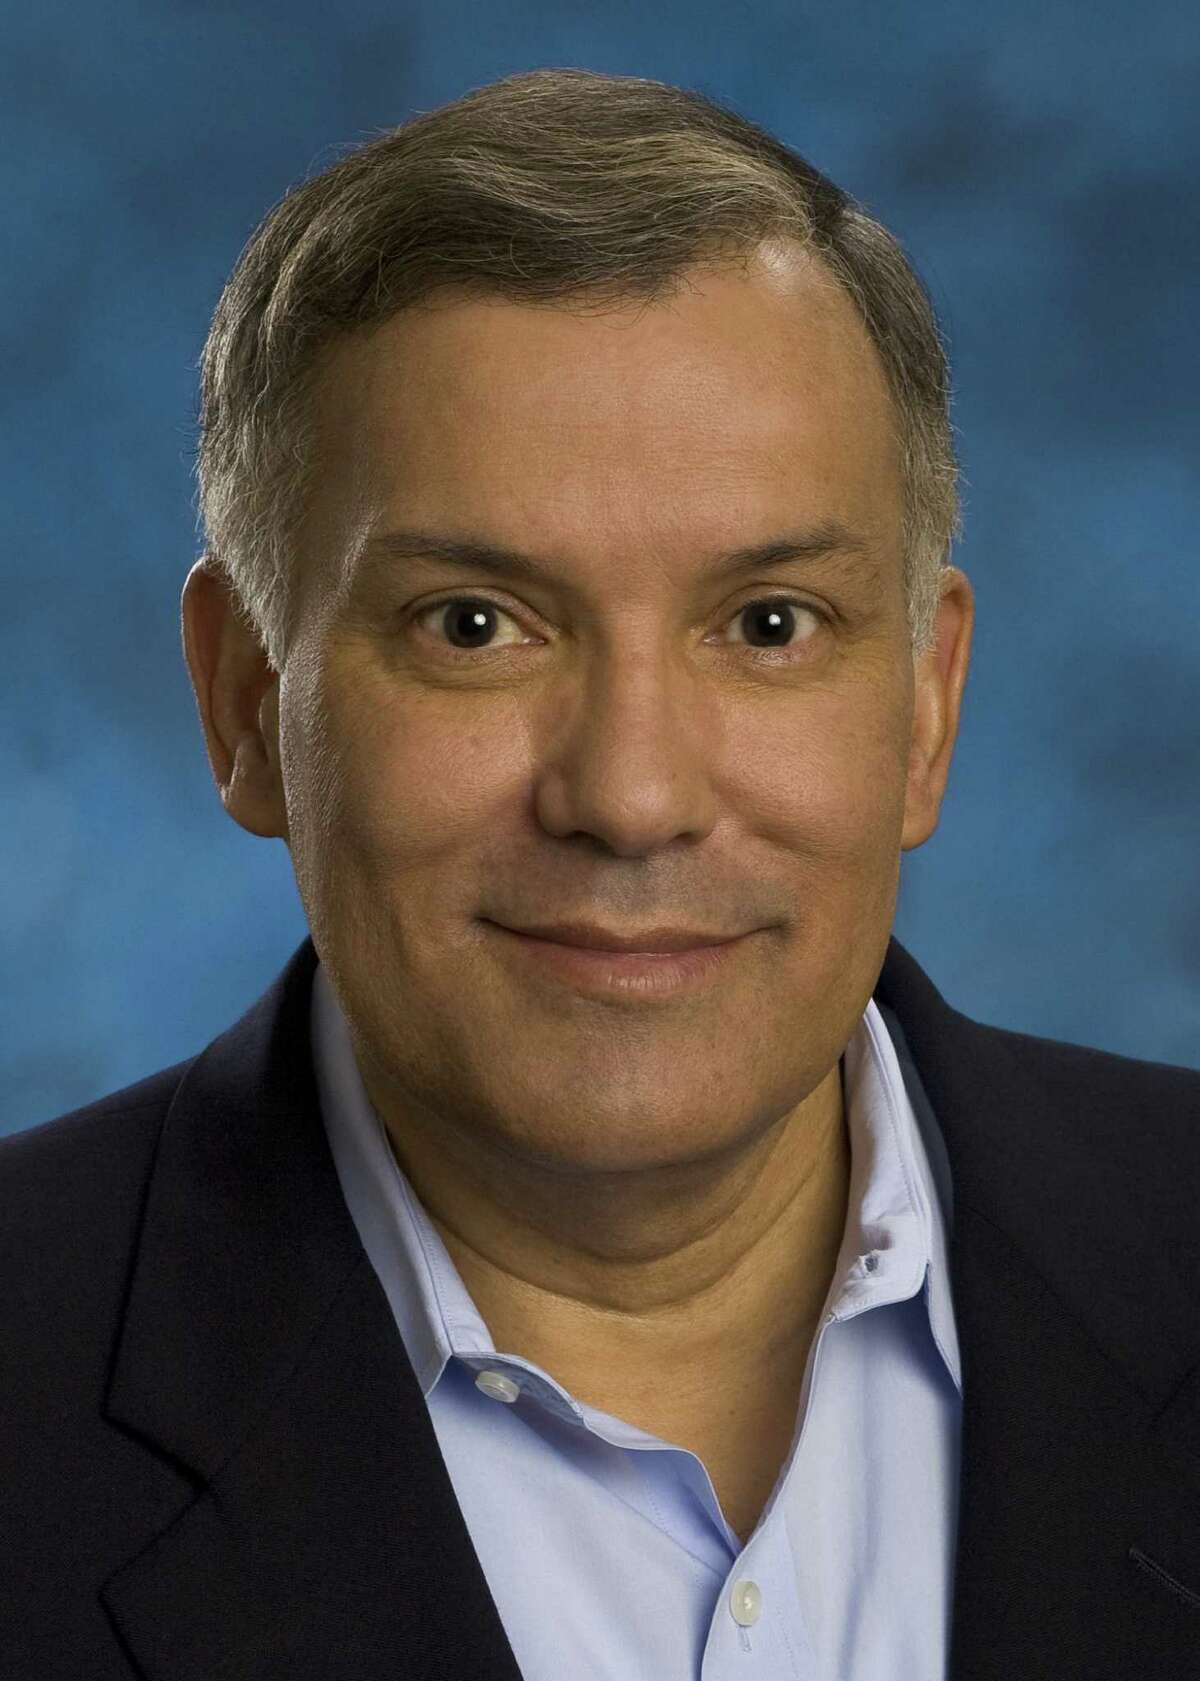 USAA President and CEO Joe Robles earned at least $5.28 million in 2012.